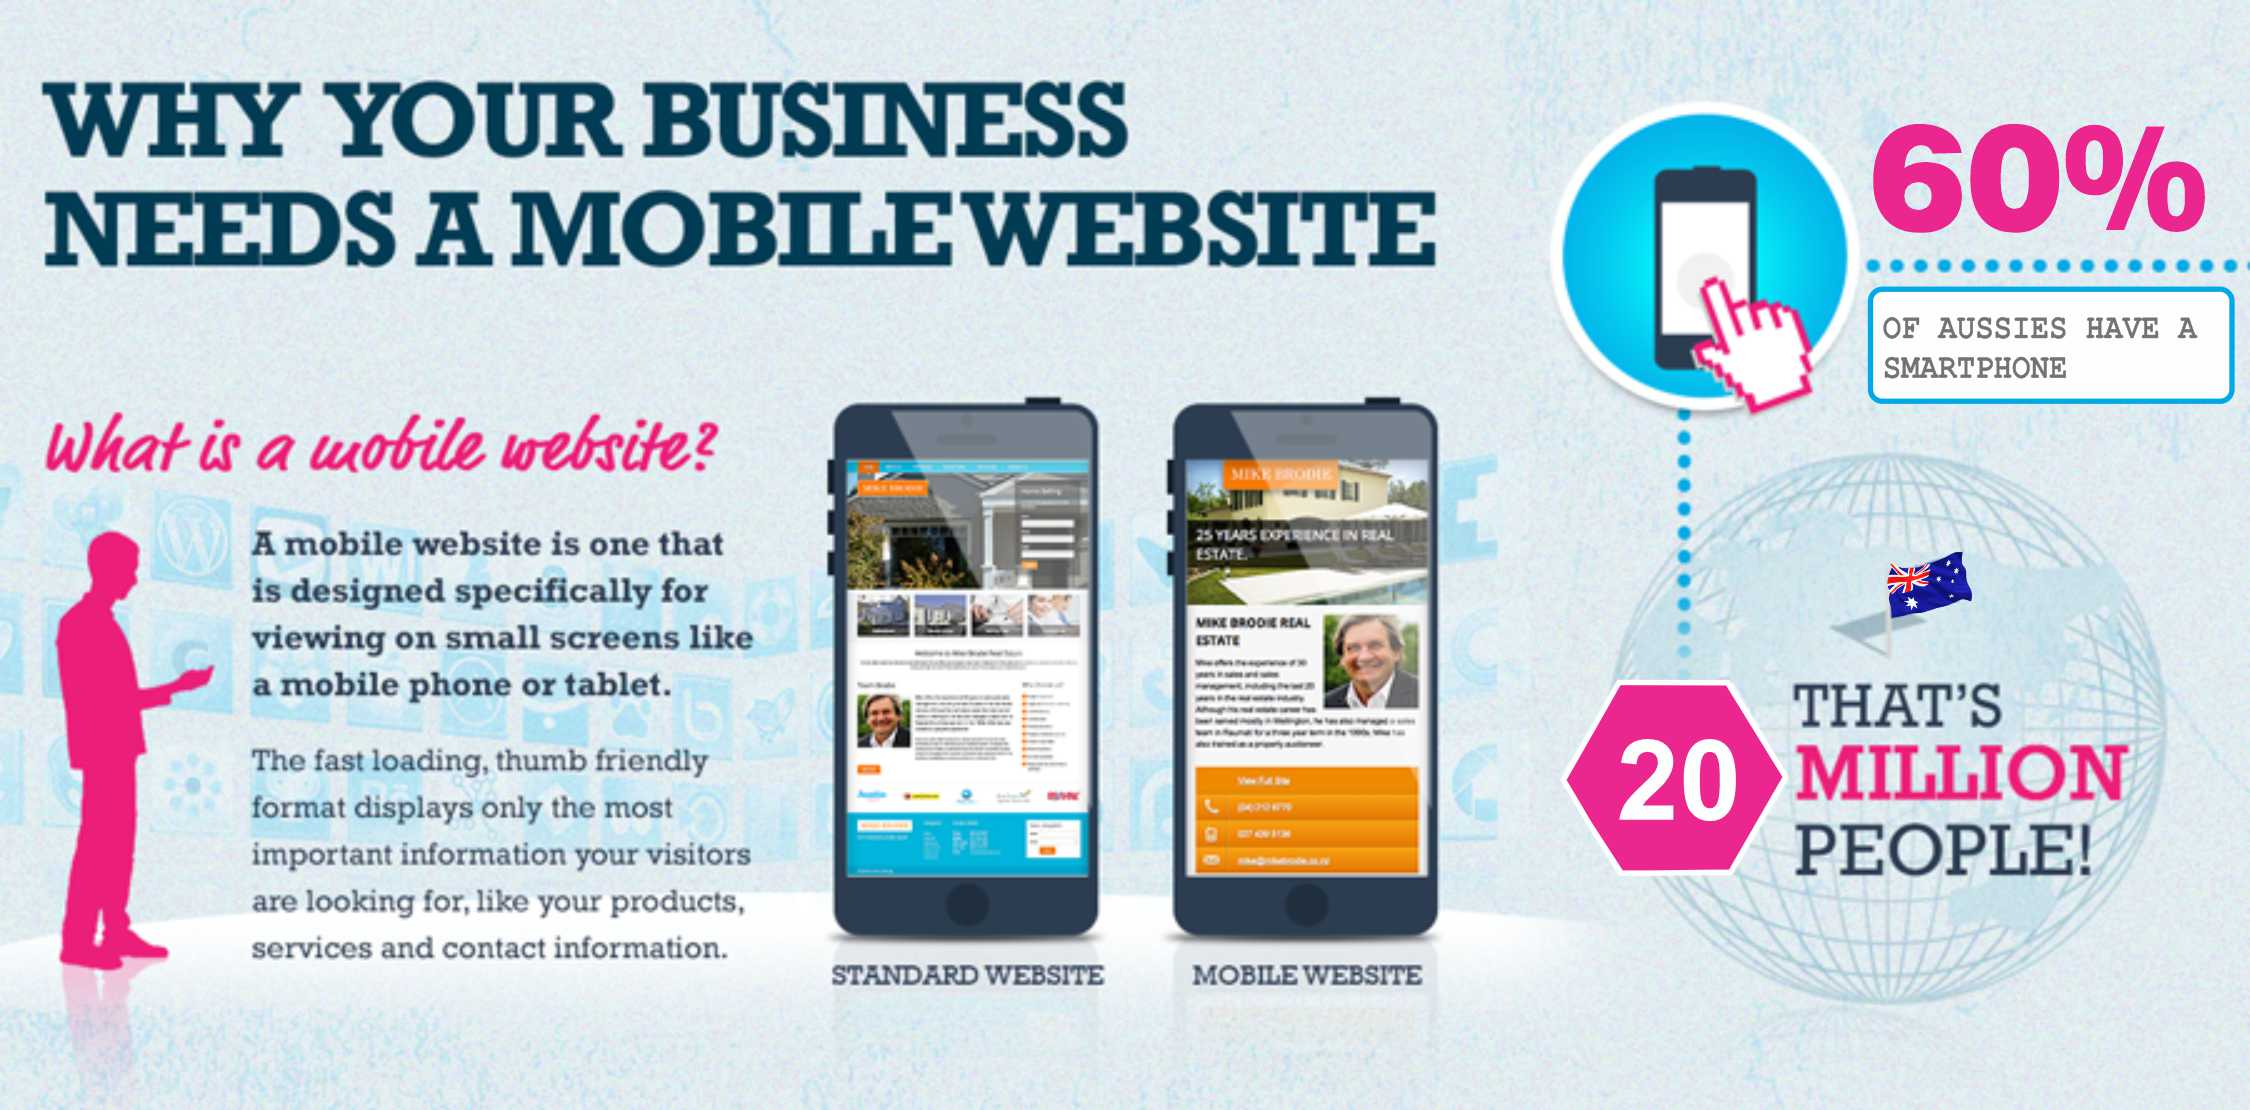 Mobile website infographic